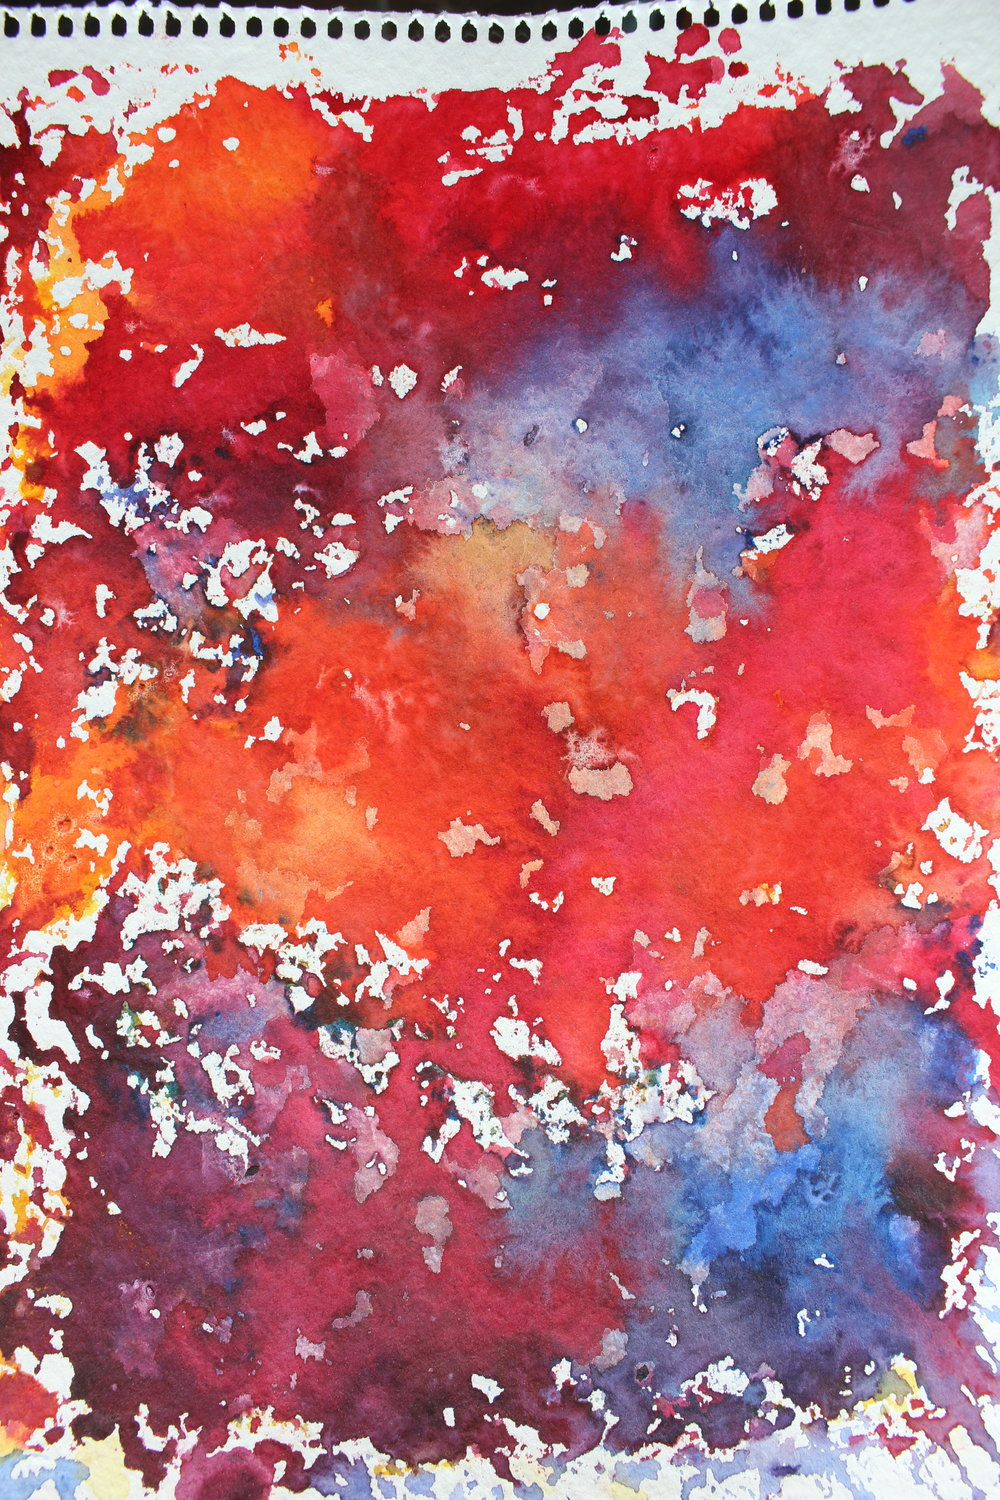 watercolor red blue purple orange bright colorful painting diy project